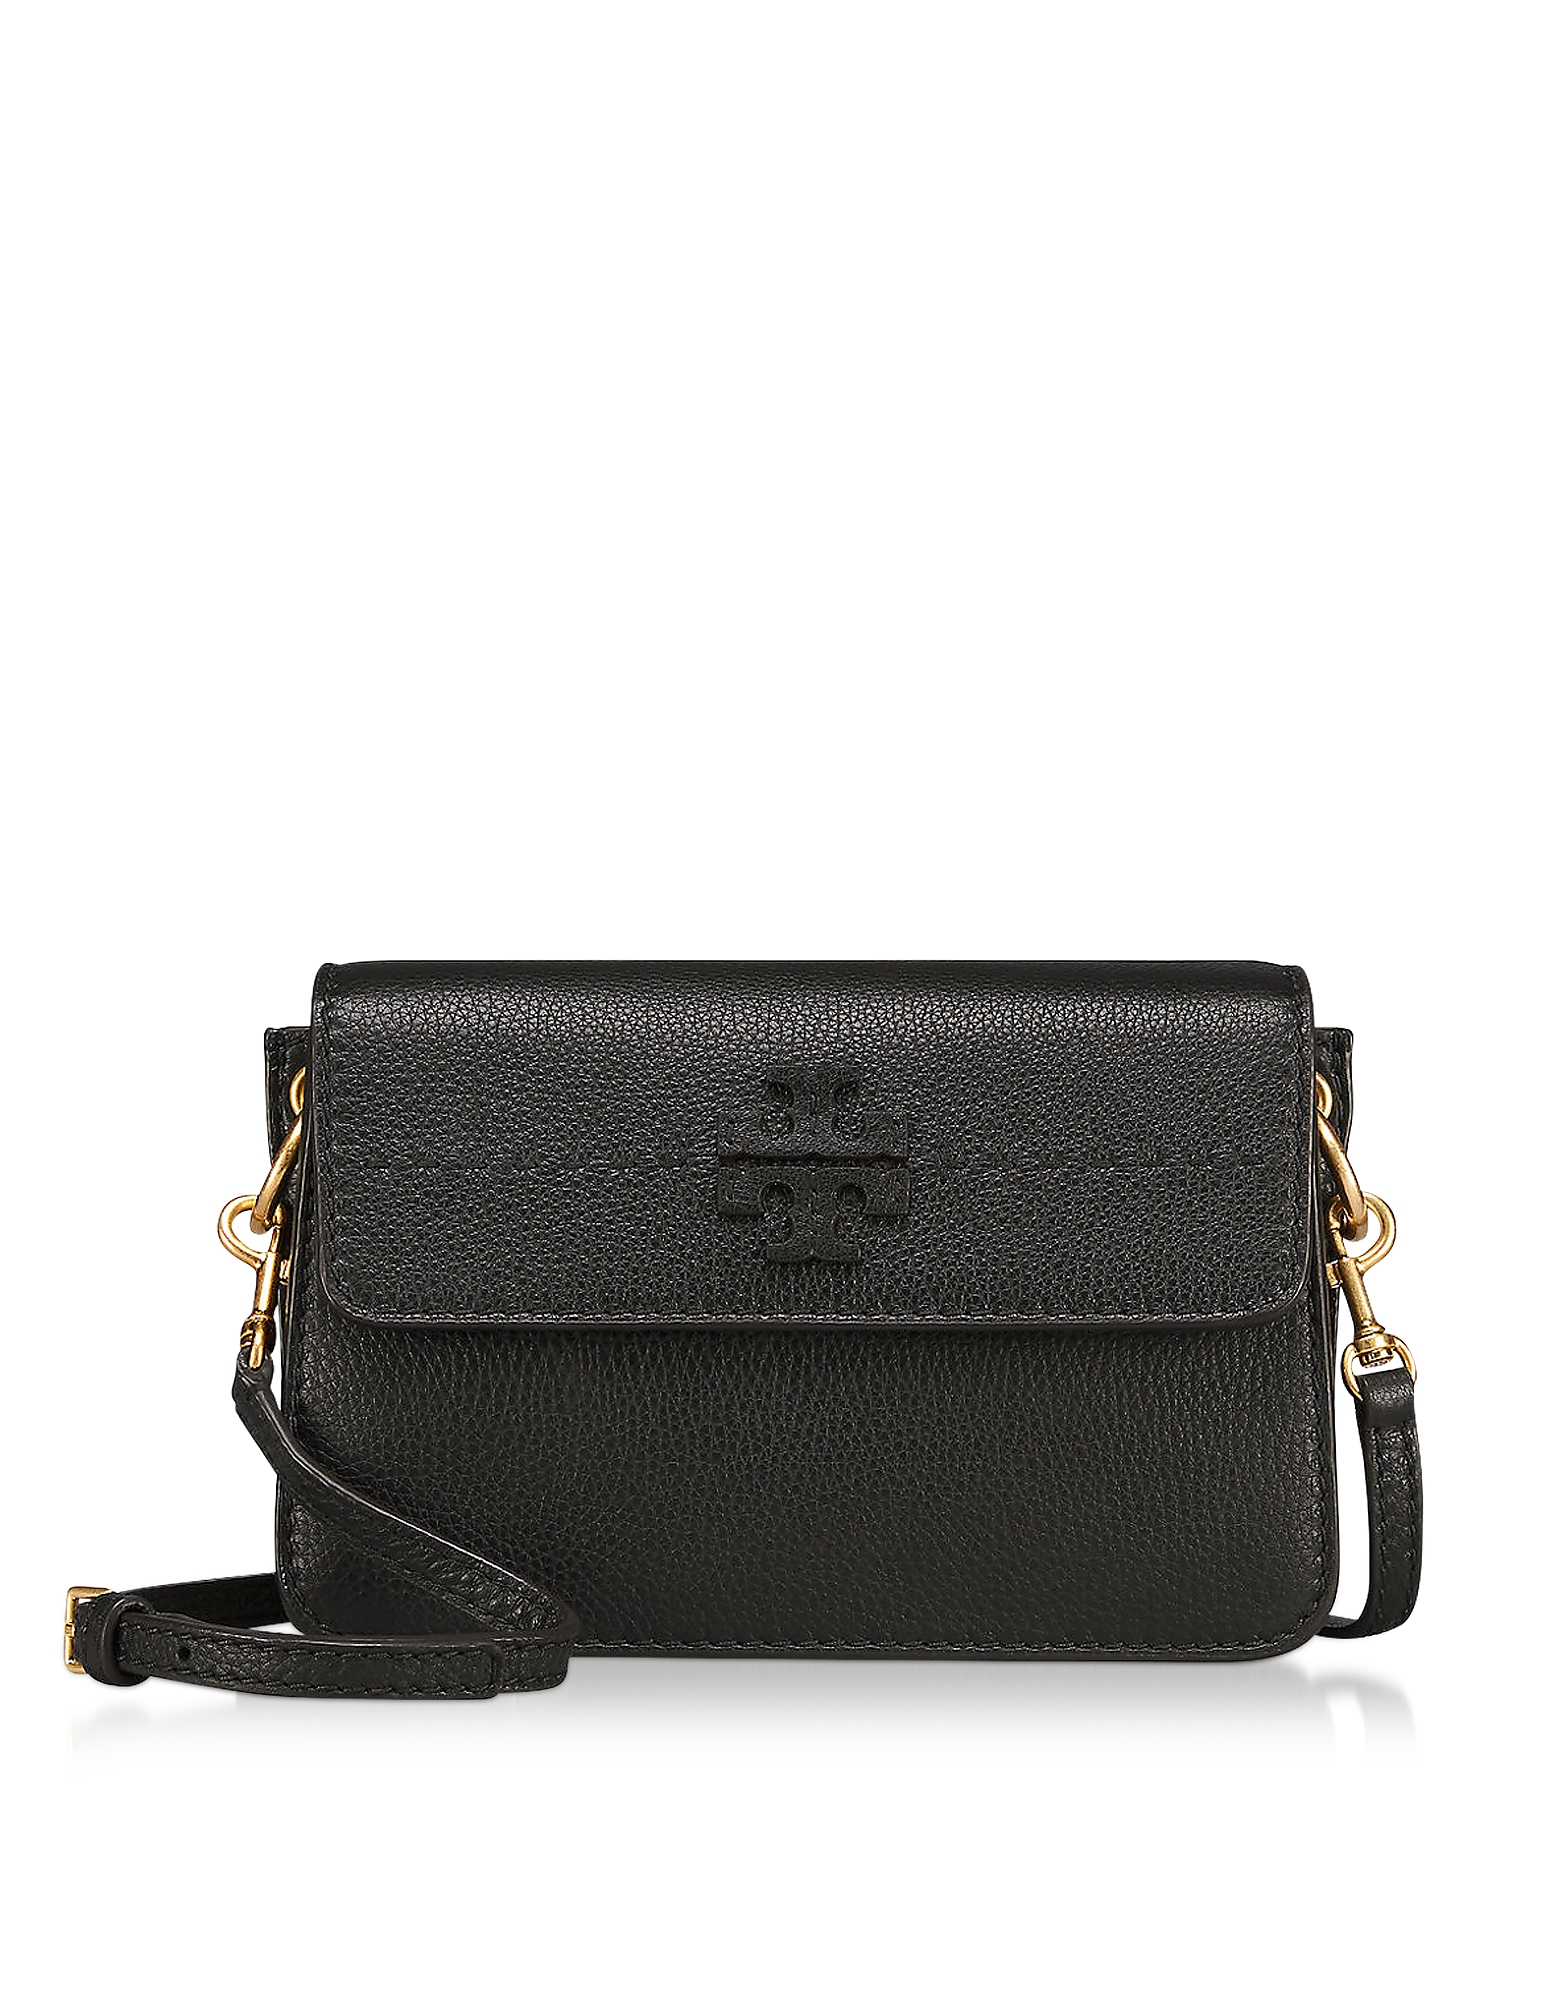 d74f71ce9624 Tory Burch - McGraw Black Pebbled Leather Crossbody Bag